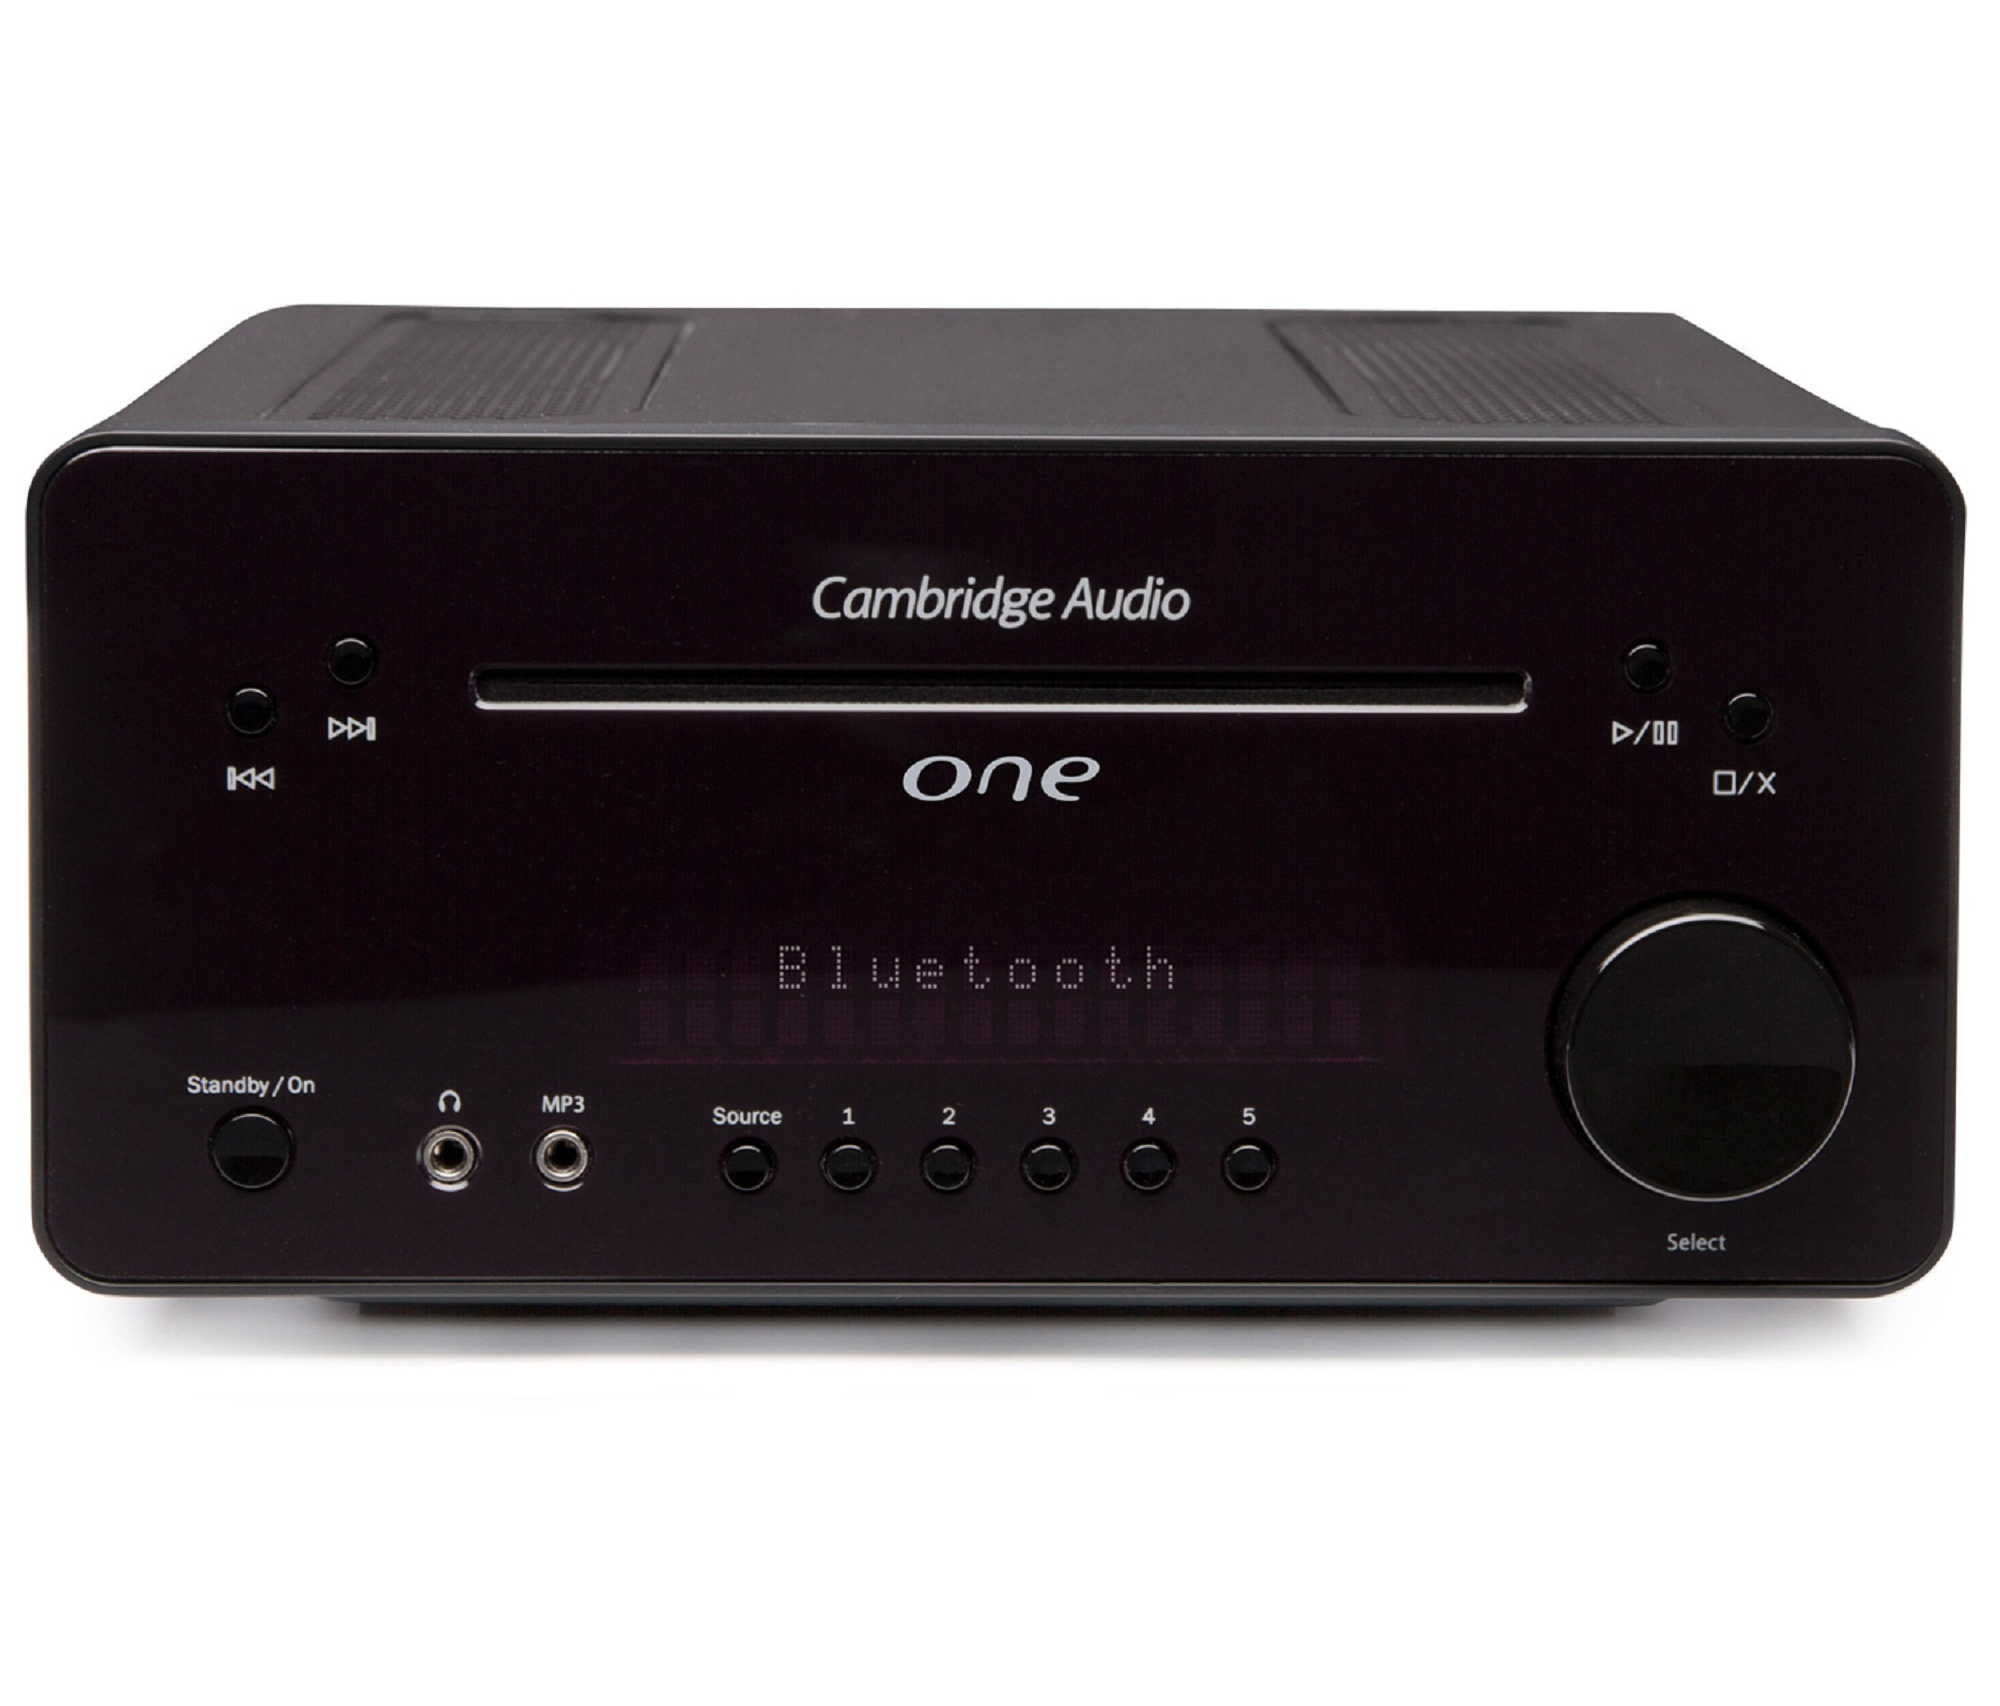 cambridge audio one mini hi fi system dab fm tuner. Black Bedroom Furniture Sets. Home Design Ideas